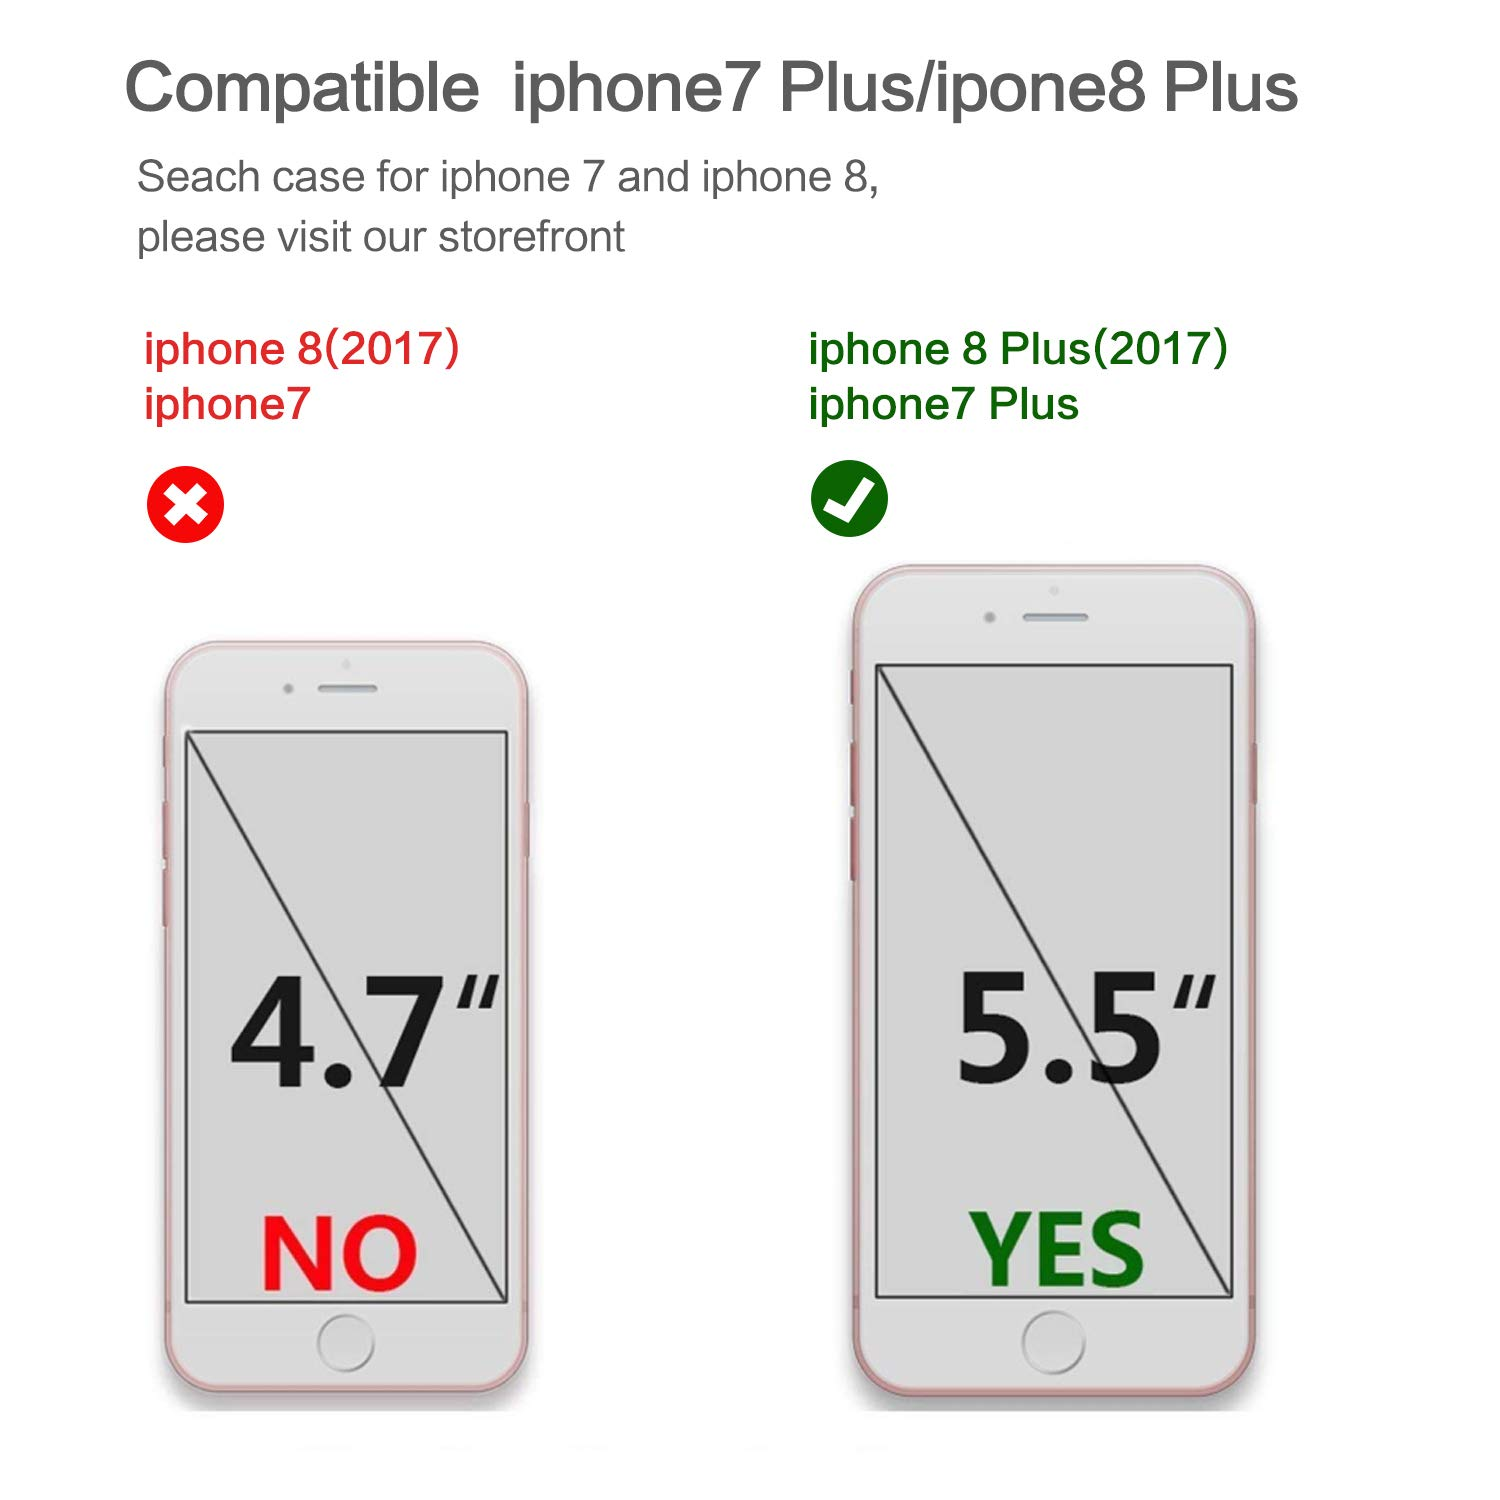 EMORCO Marble iPhone 7 Plus Case Bumper Slim TPU Soft Rubber Silicone Cover Anti-Scratch Thin Back Protective Phone Case for Apple iPhone 7 Plus & iPhone 8 Plus Plant